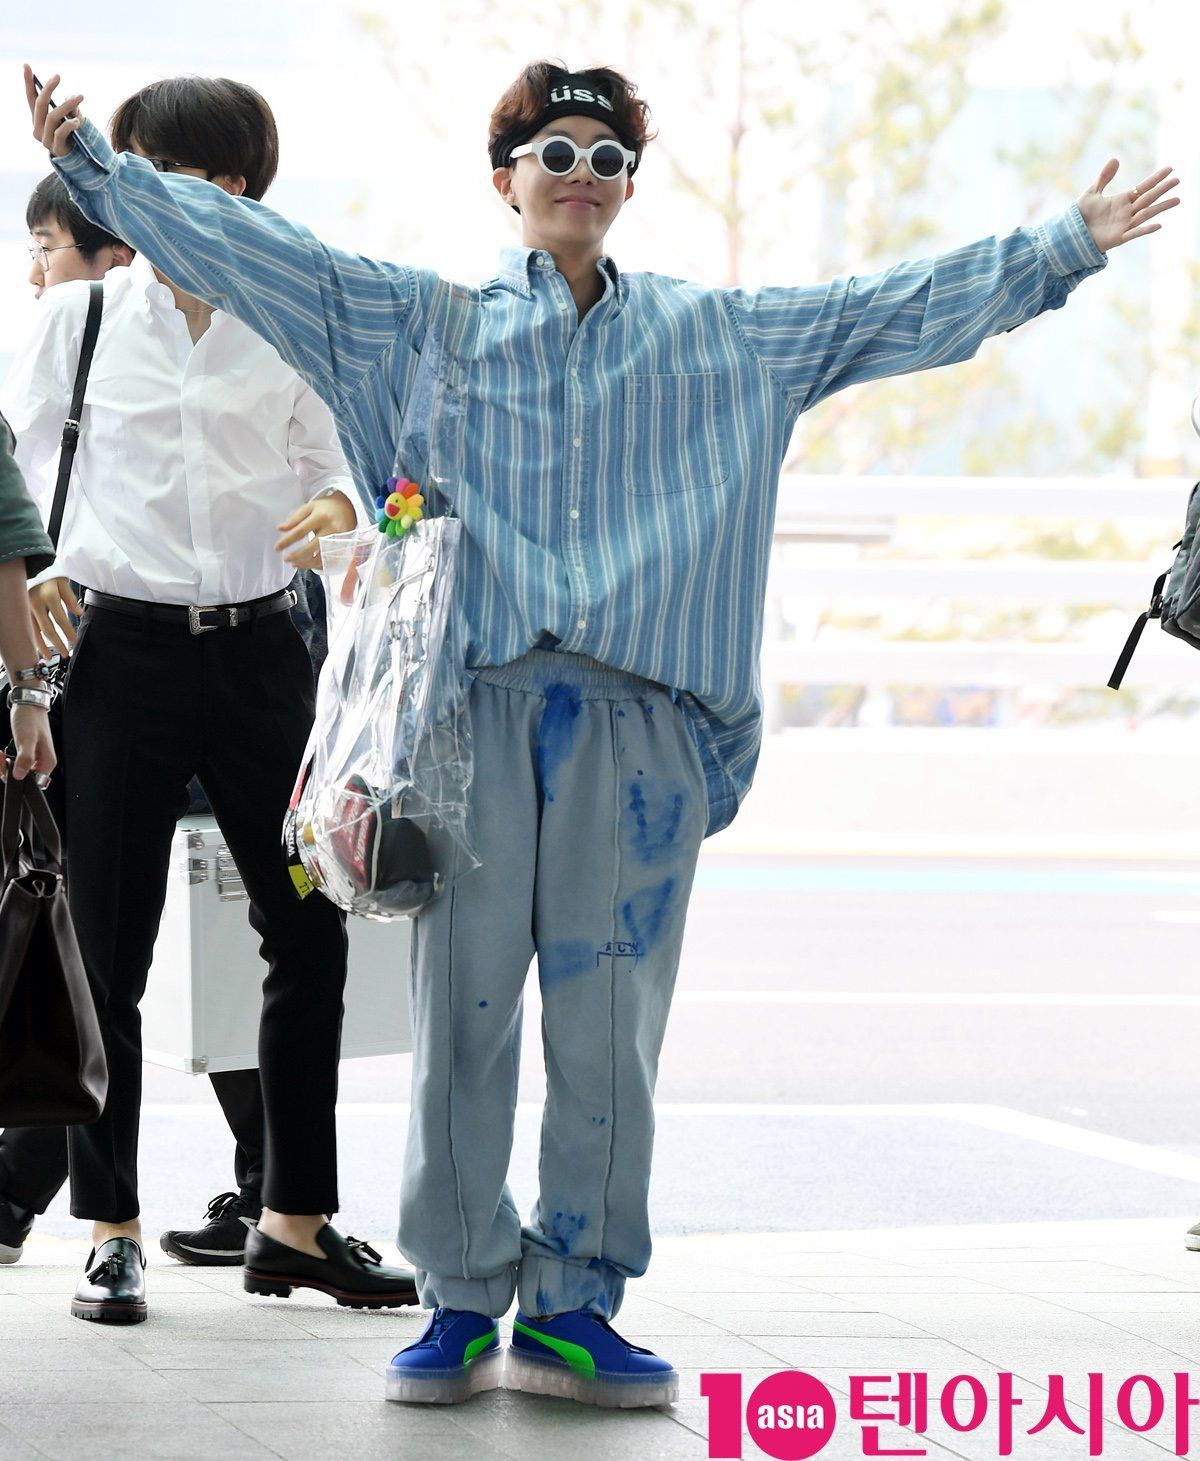 BTS J-Hope airport fashion (May 14th, 2018) Incheon Airport (With images) | Bts ...